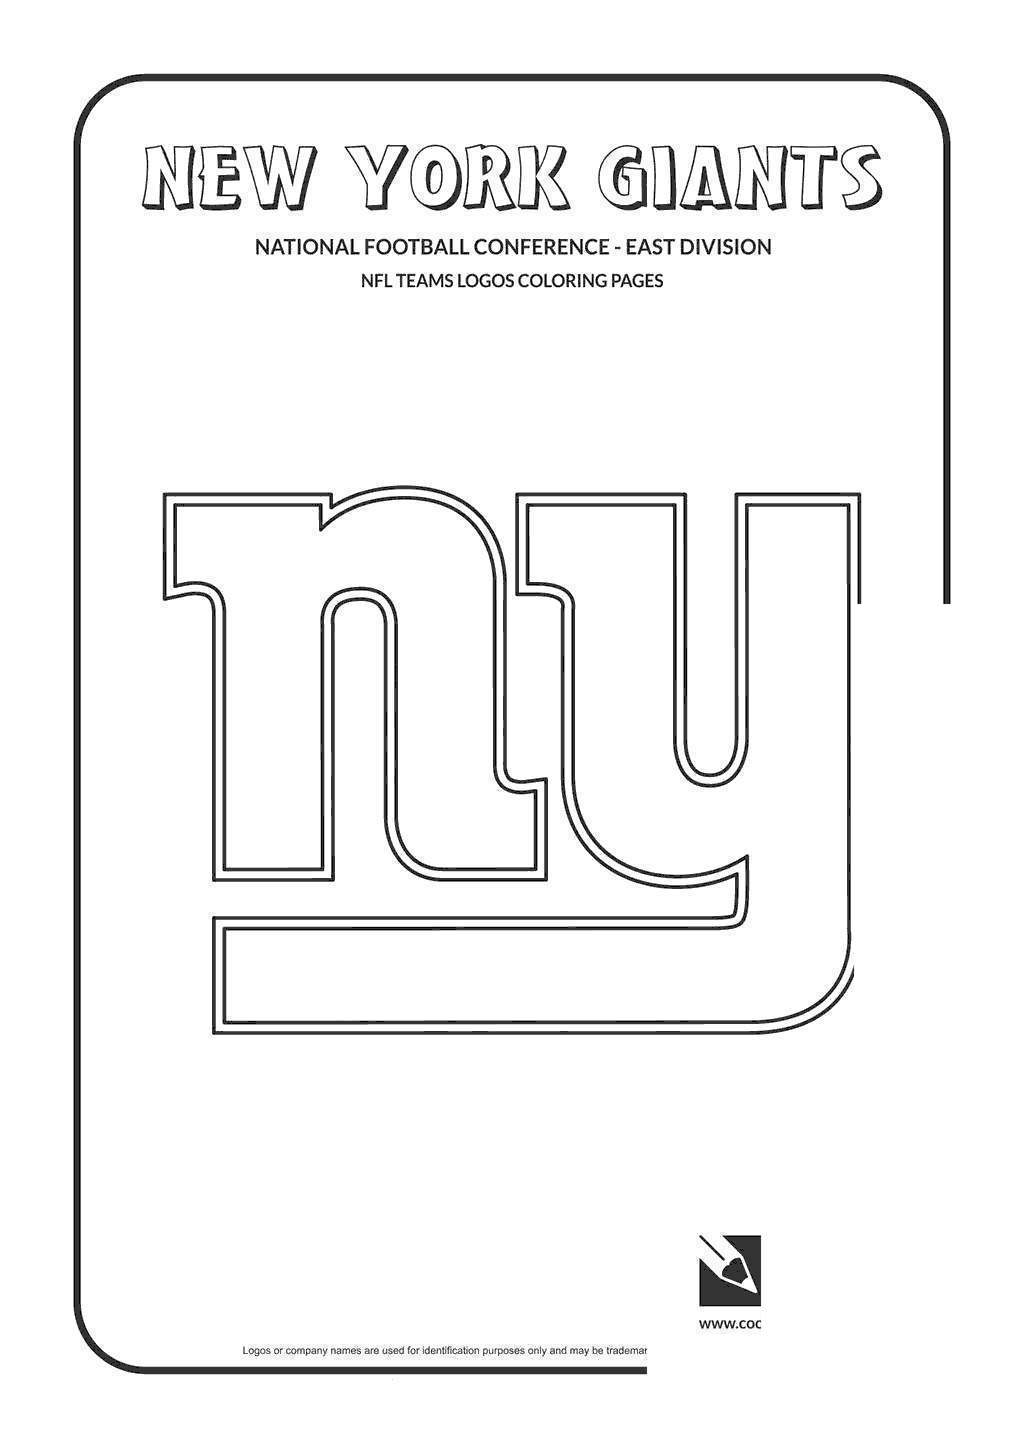 Free New York Giants Football Coloring Pages Cool NFL printable